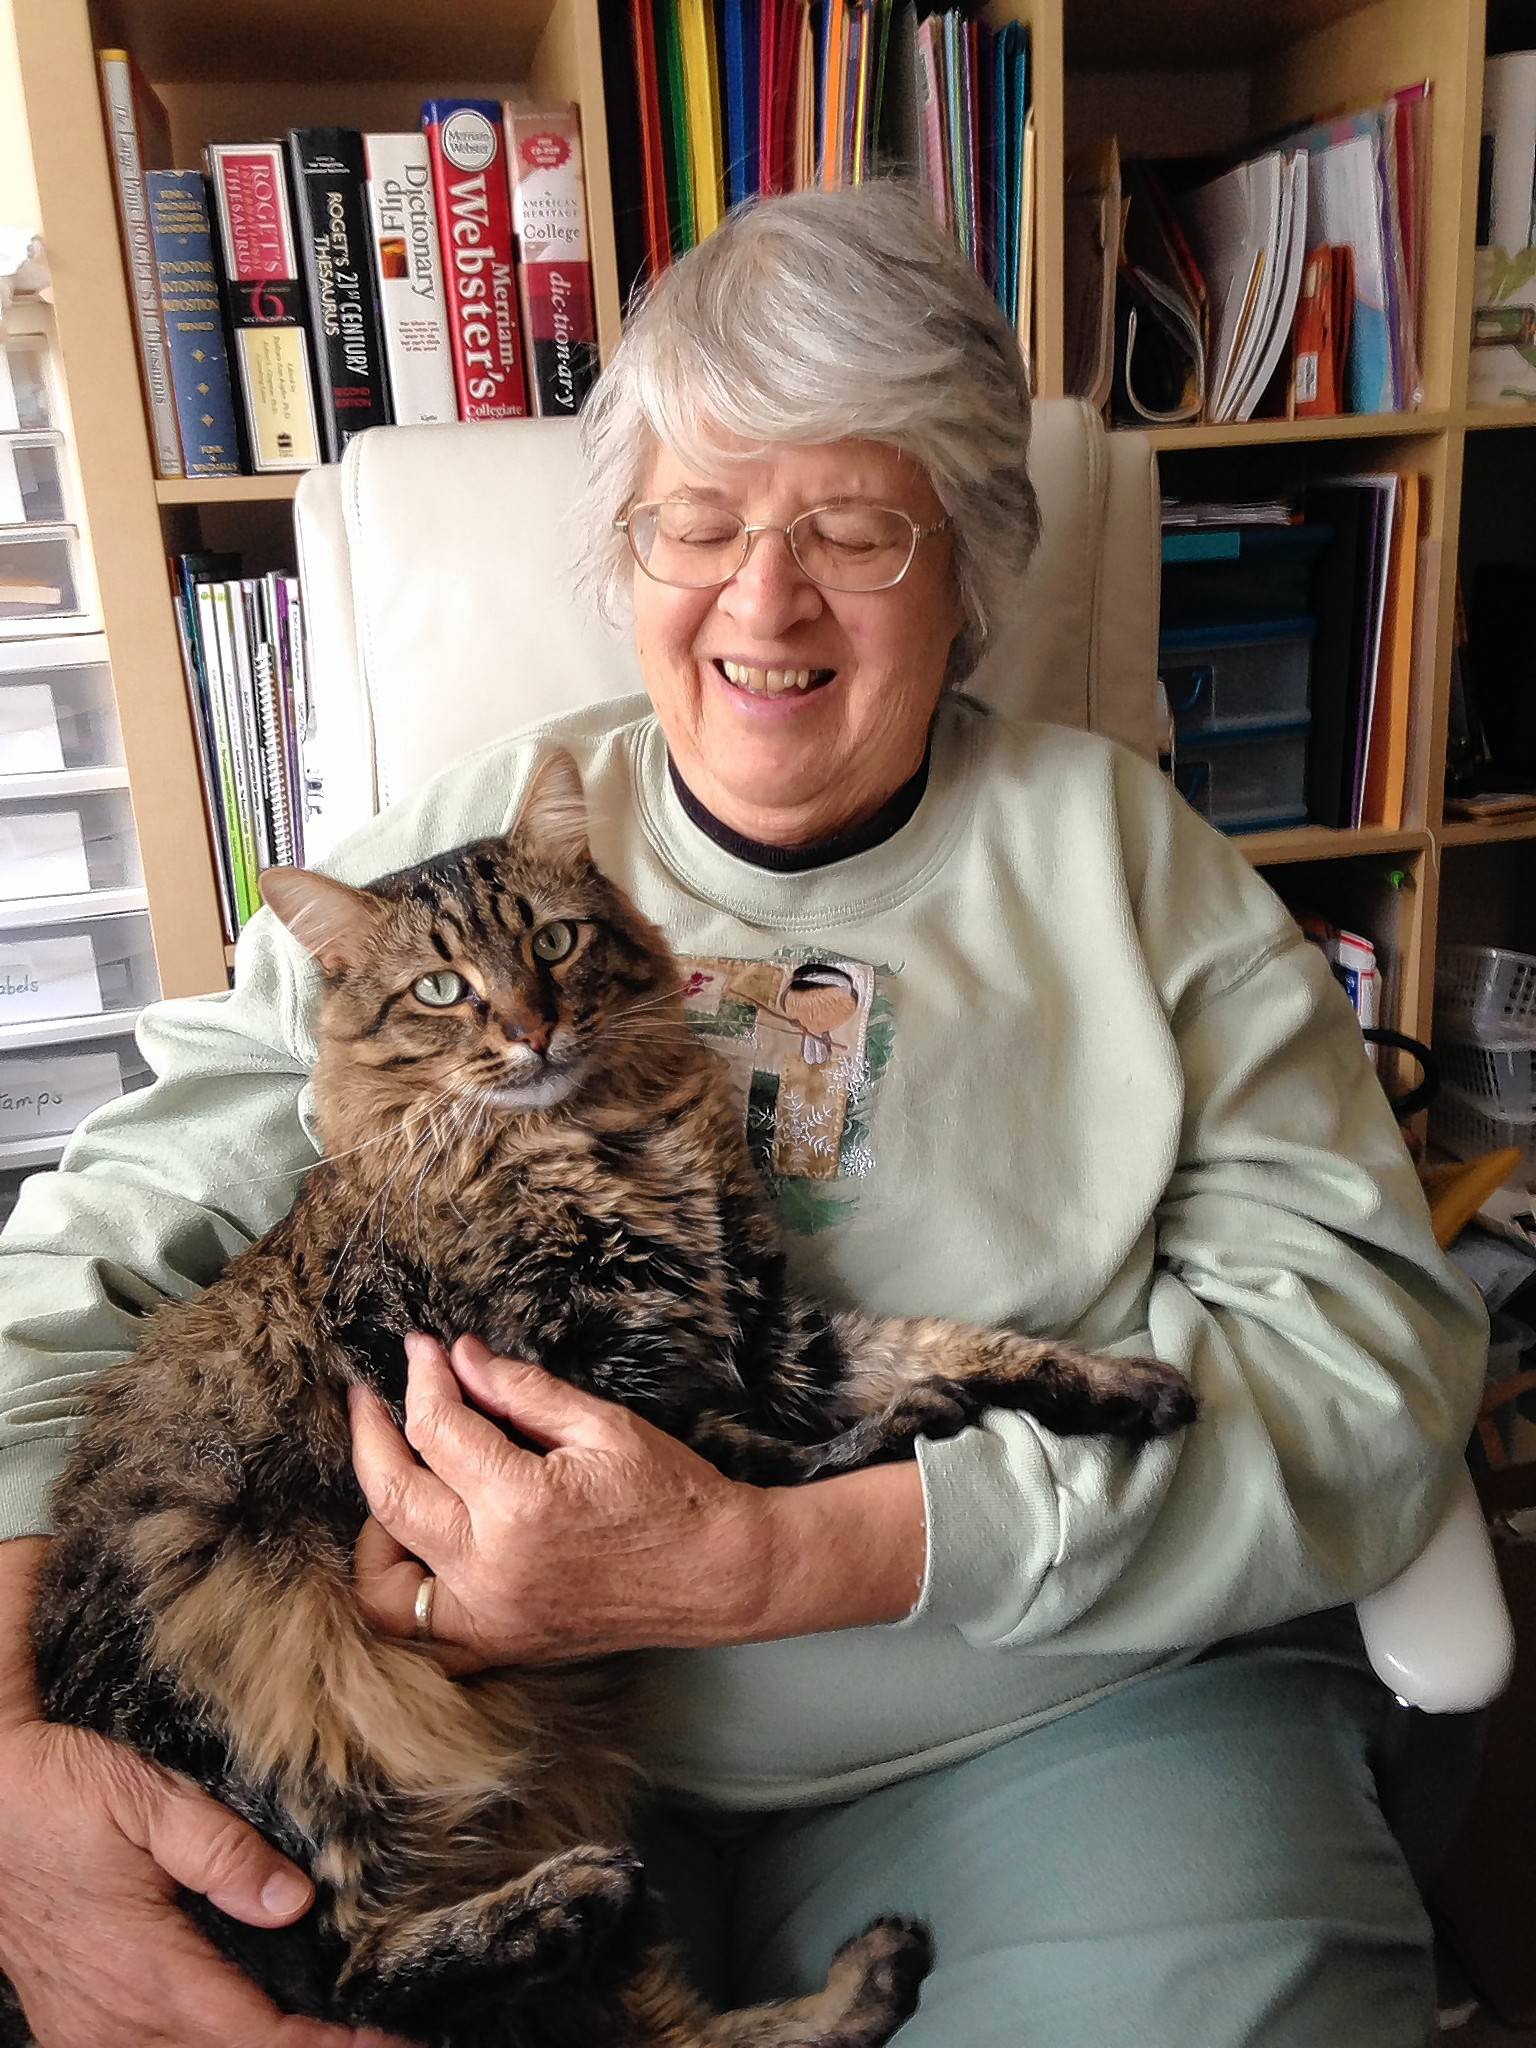 Marijon Binder founded Touched By An Animal more than 30 years ago when several of her neighbors began having health problems. They resisted moving into assisted living housing because they worried about leaving their pets. Binder has adopted her office cat, Milkshake, which was rescued by the organization.